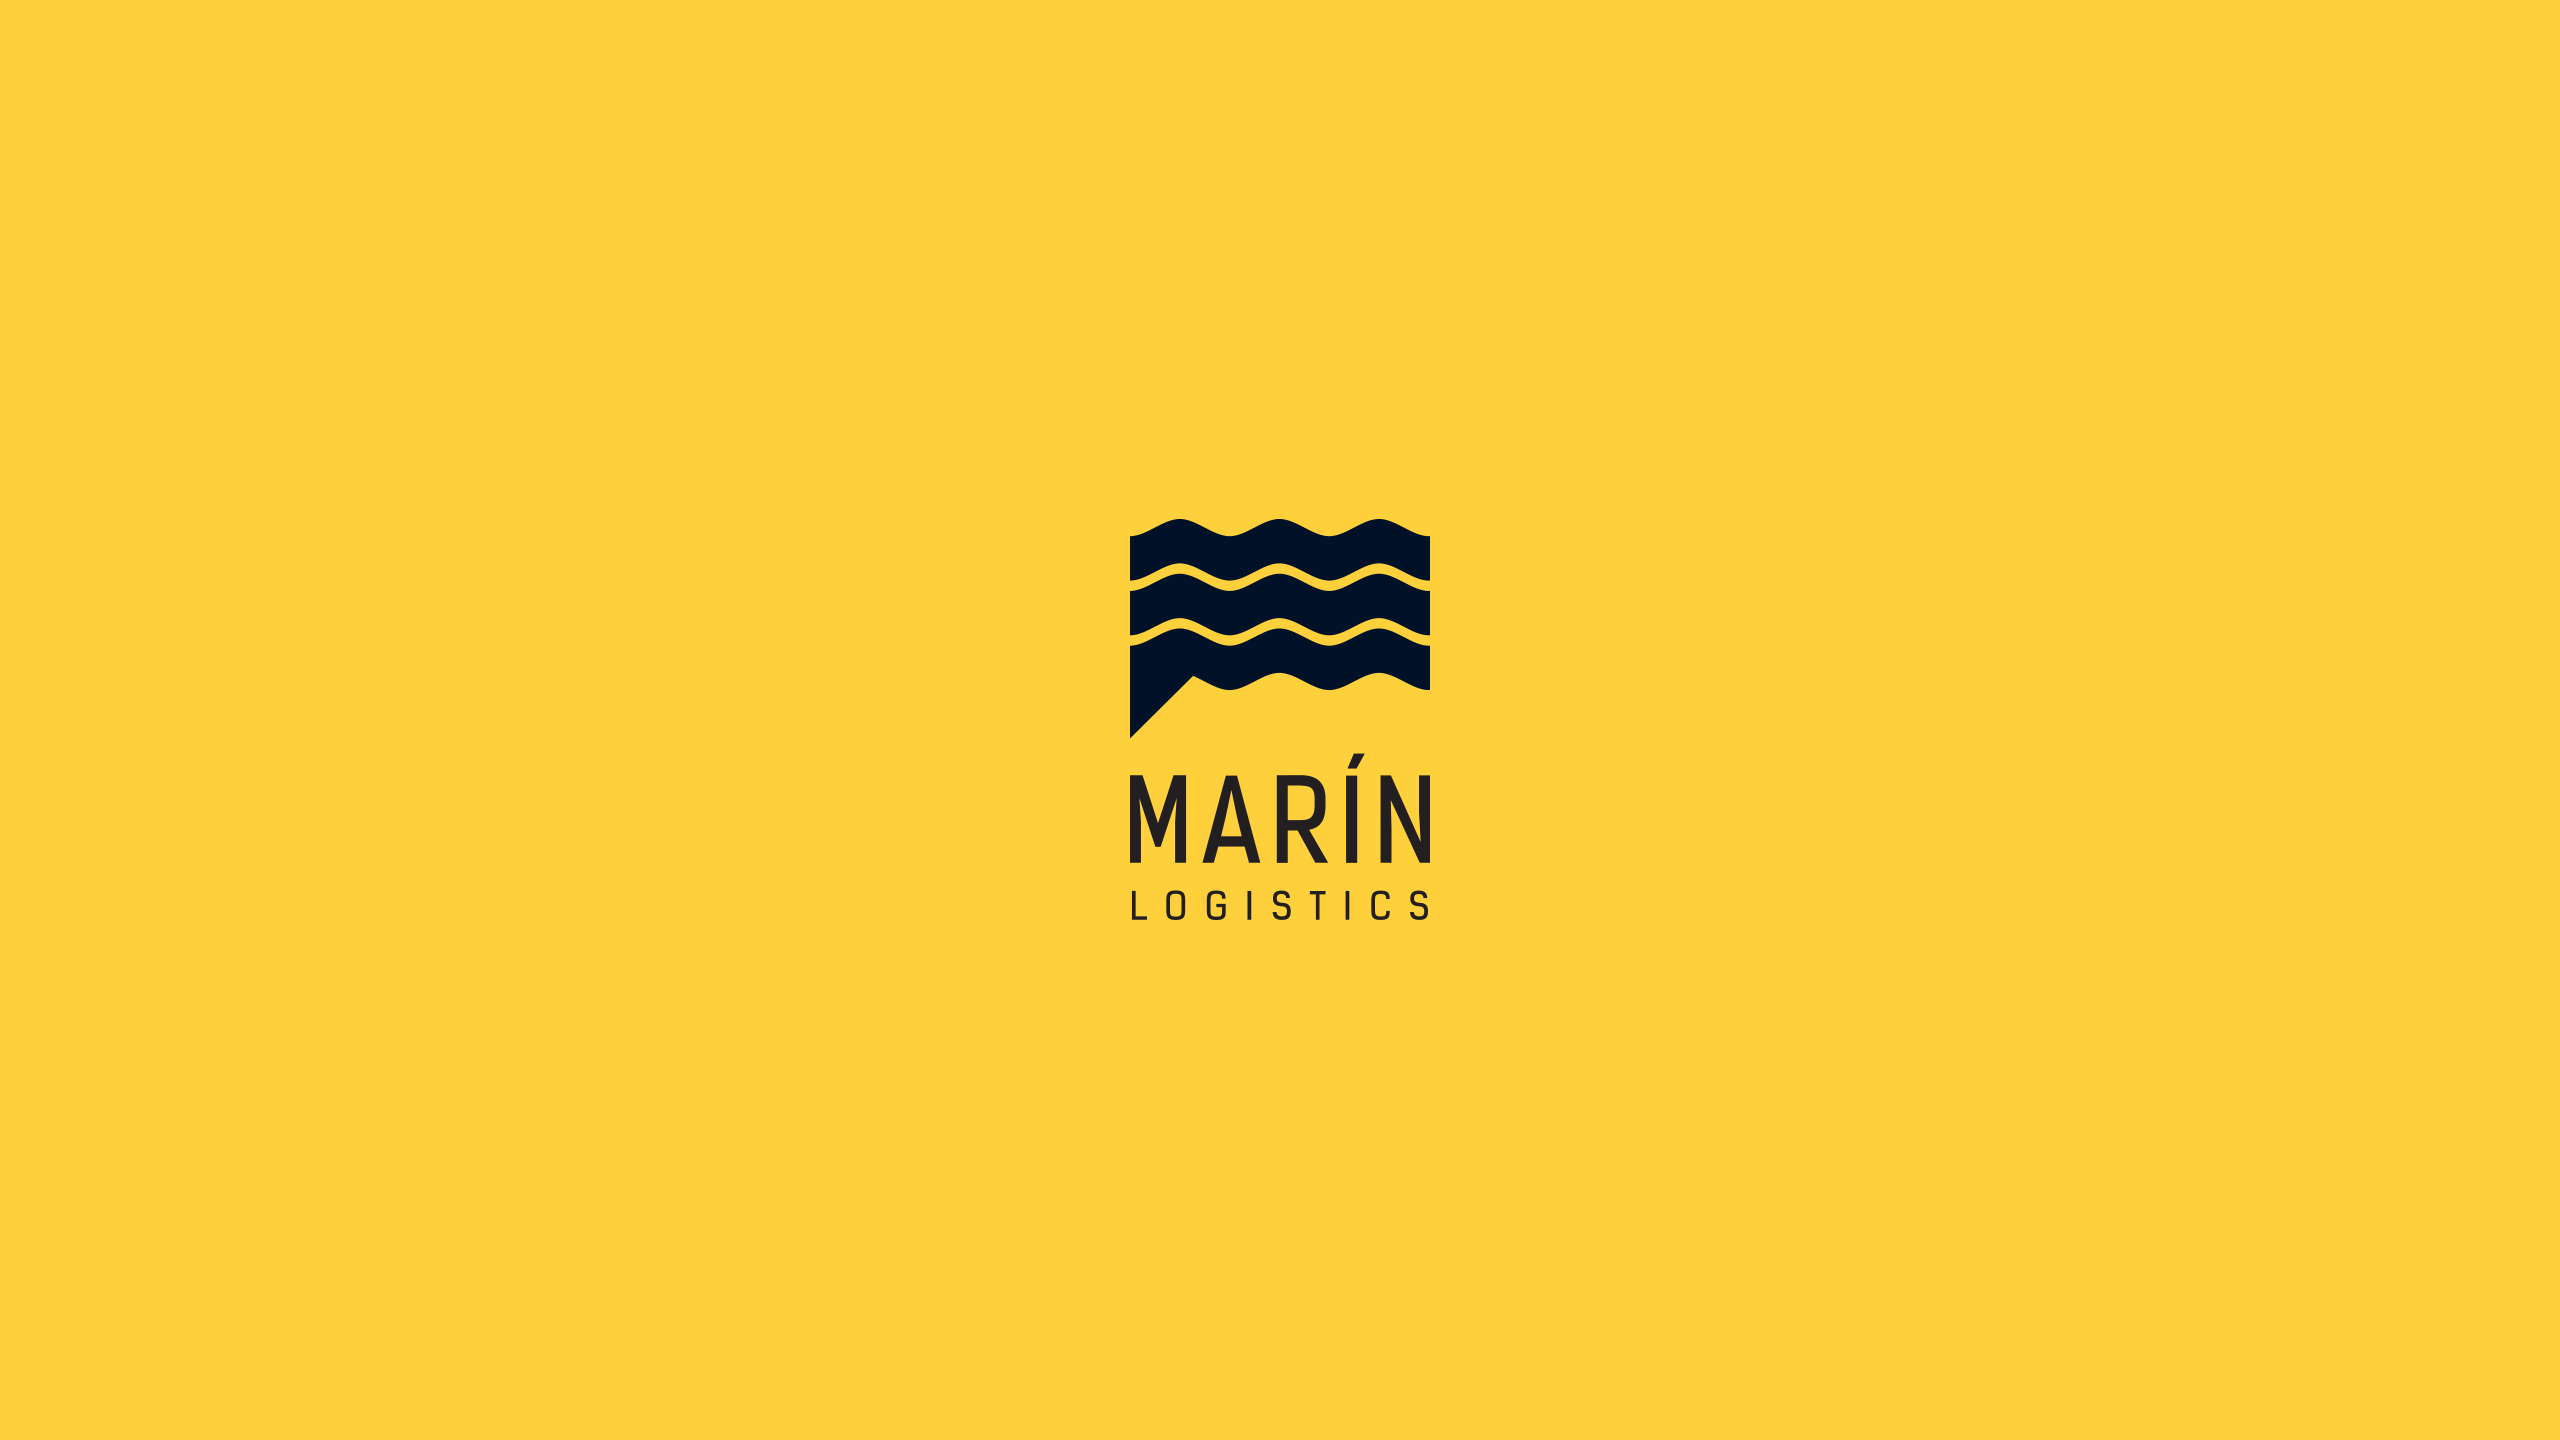 Logotipo Marin Logistics Pliegues